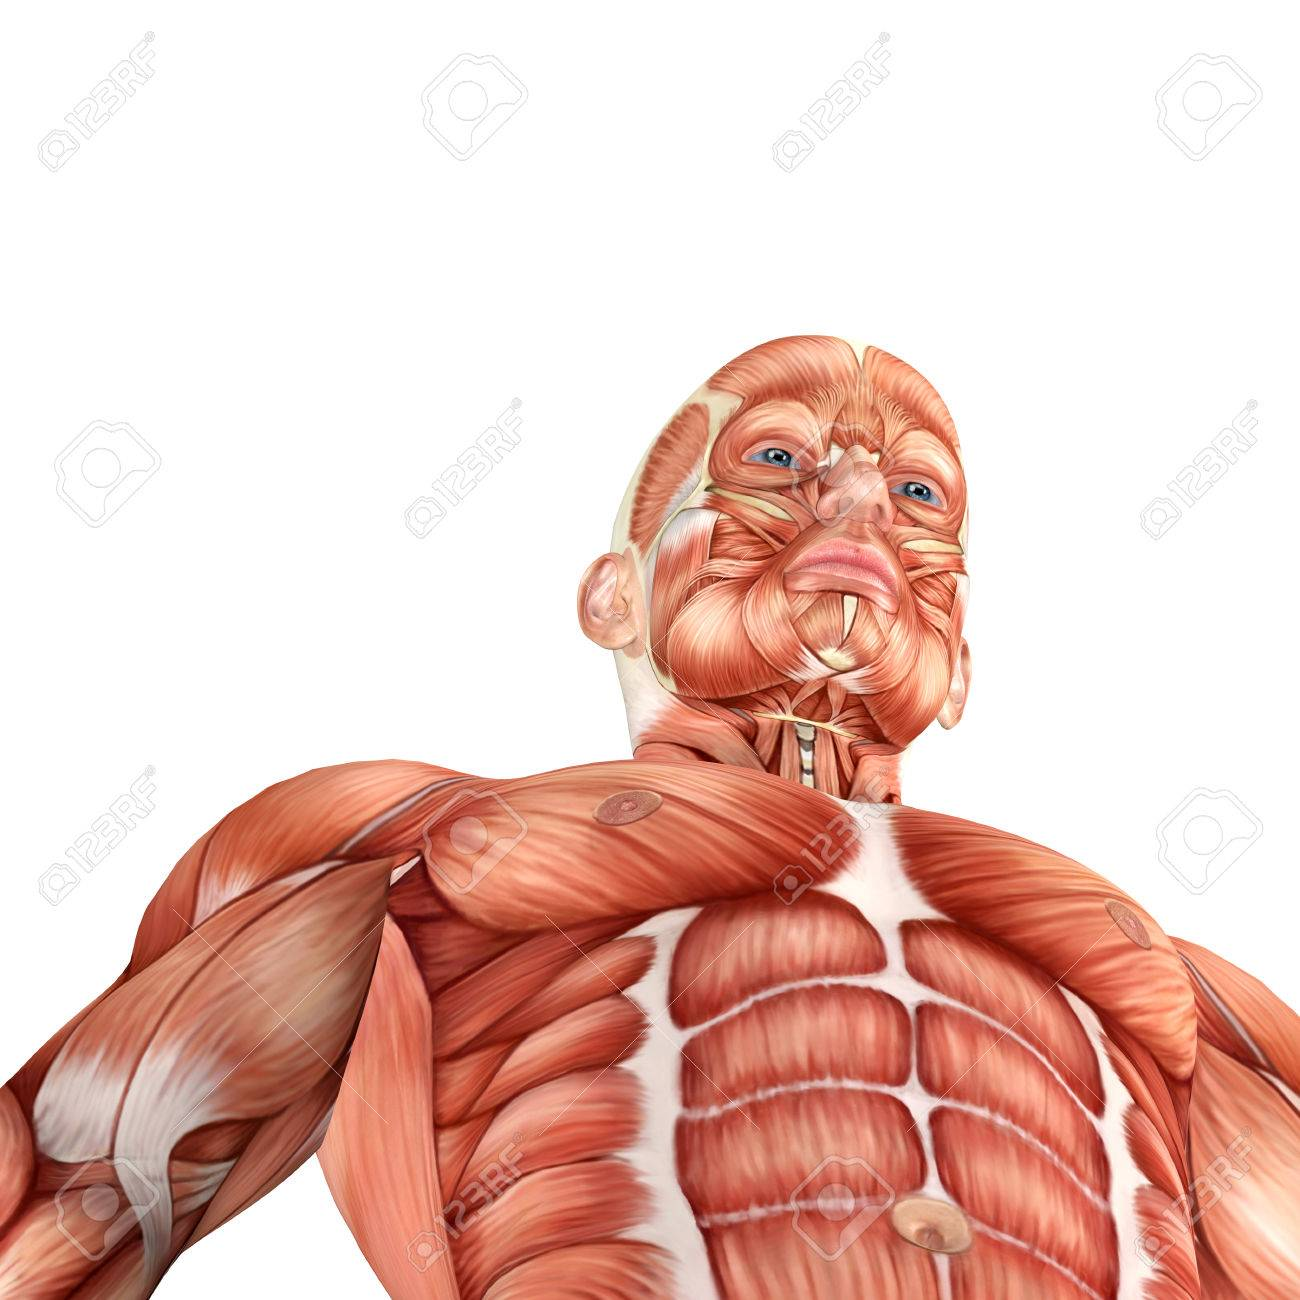 3d Male Anatomy Bottom View Stock Photo, Picture And Royalty Free ...